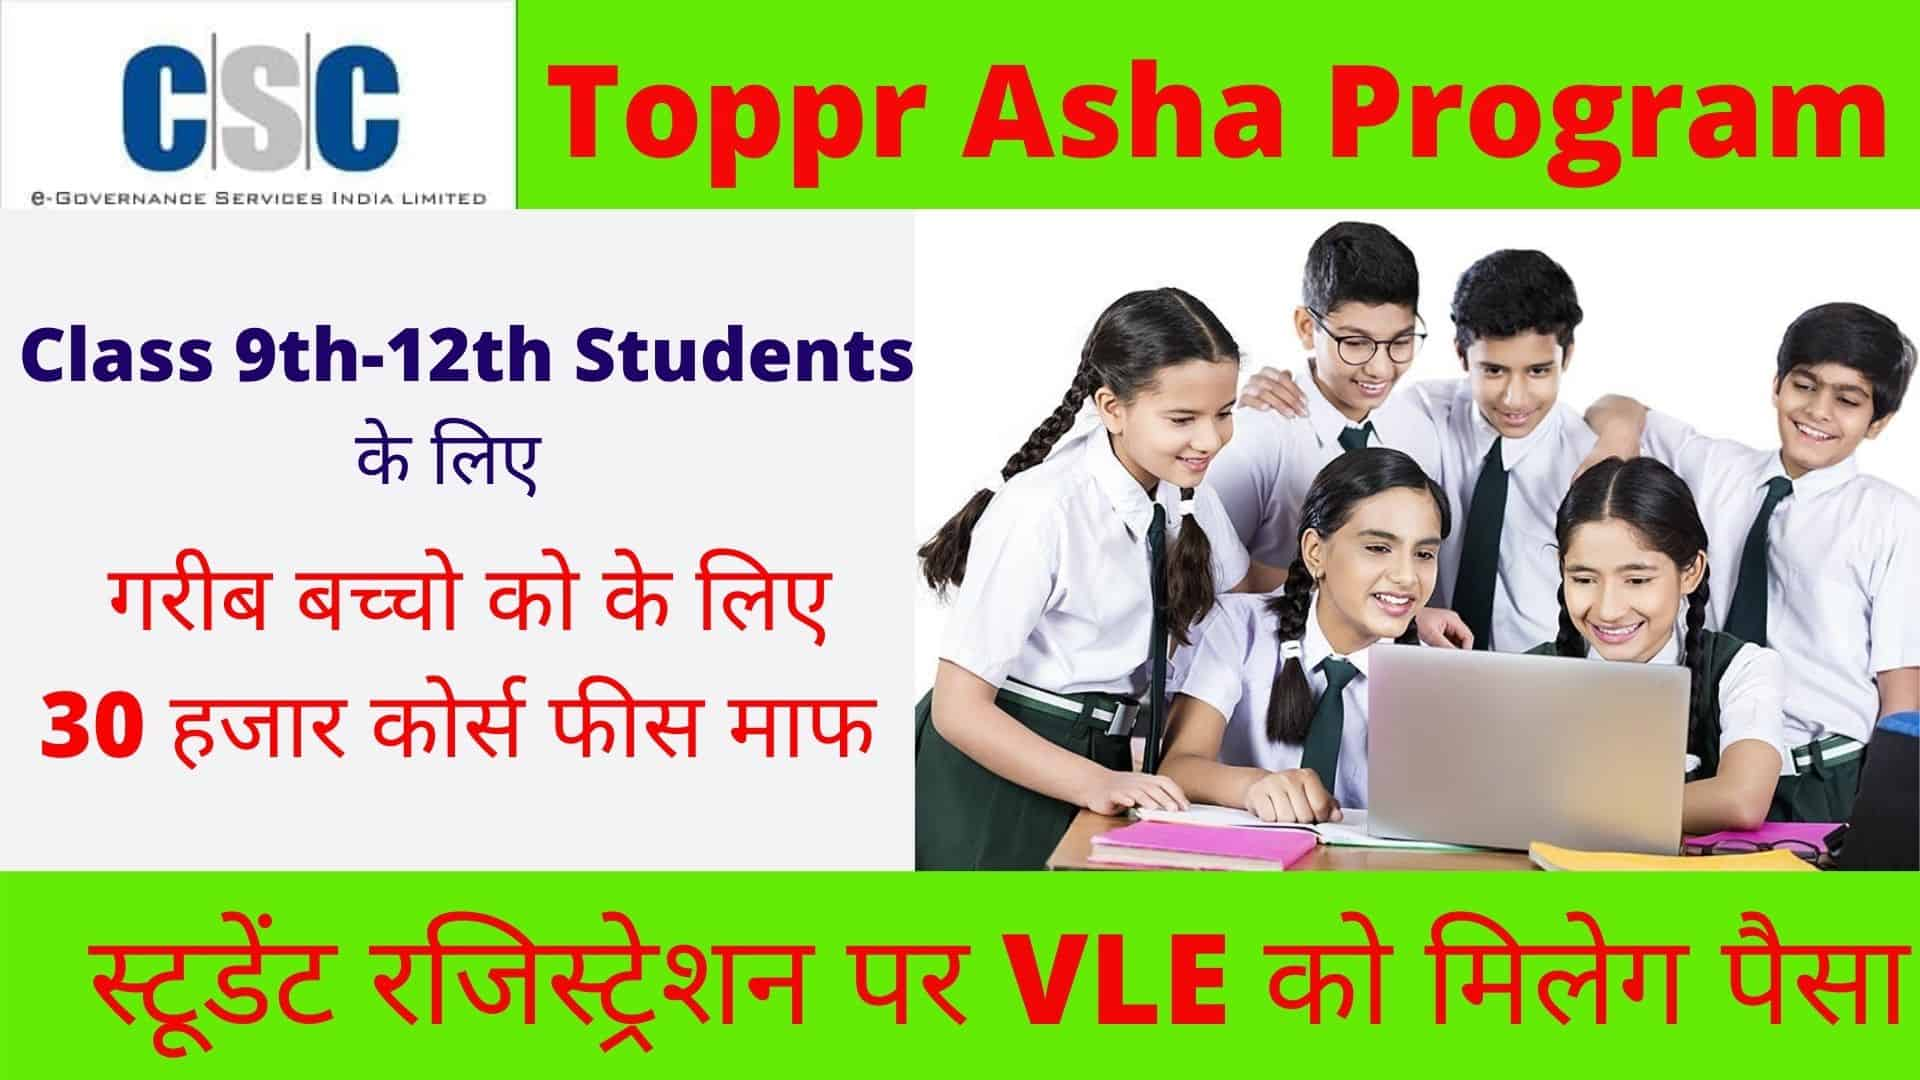 CSC Toppr Asha Program_ Free School Students Registration Vle Commission